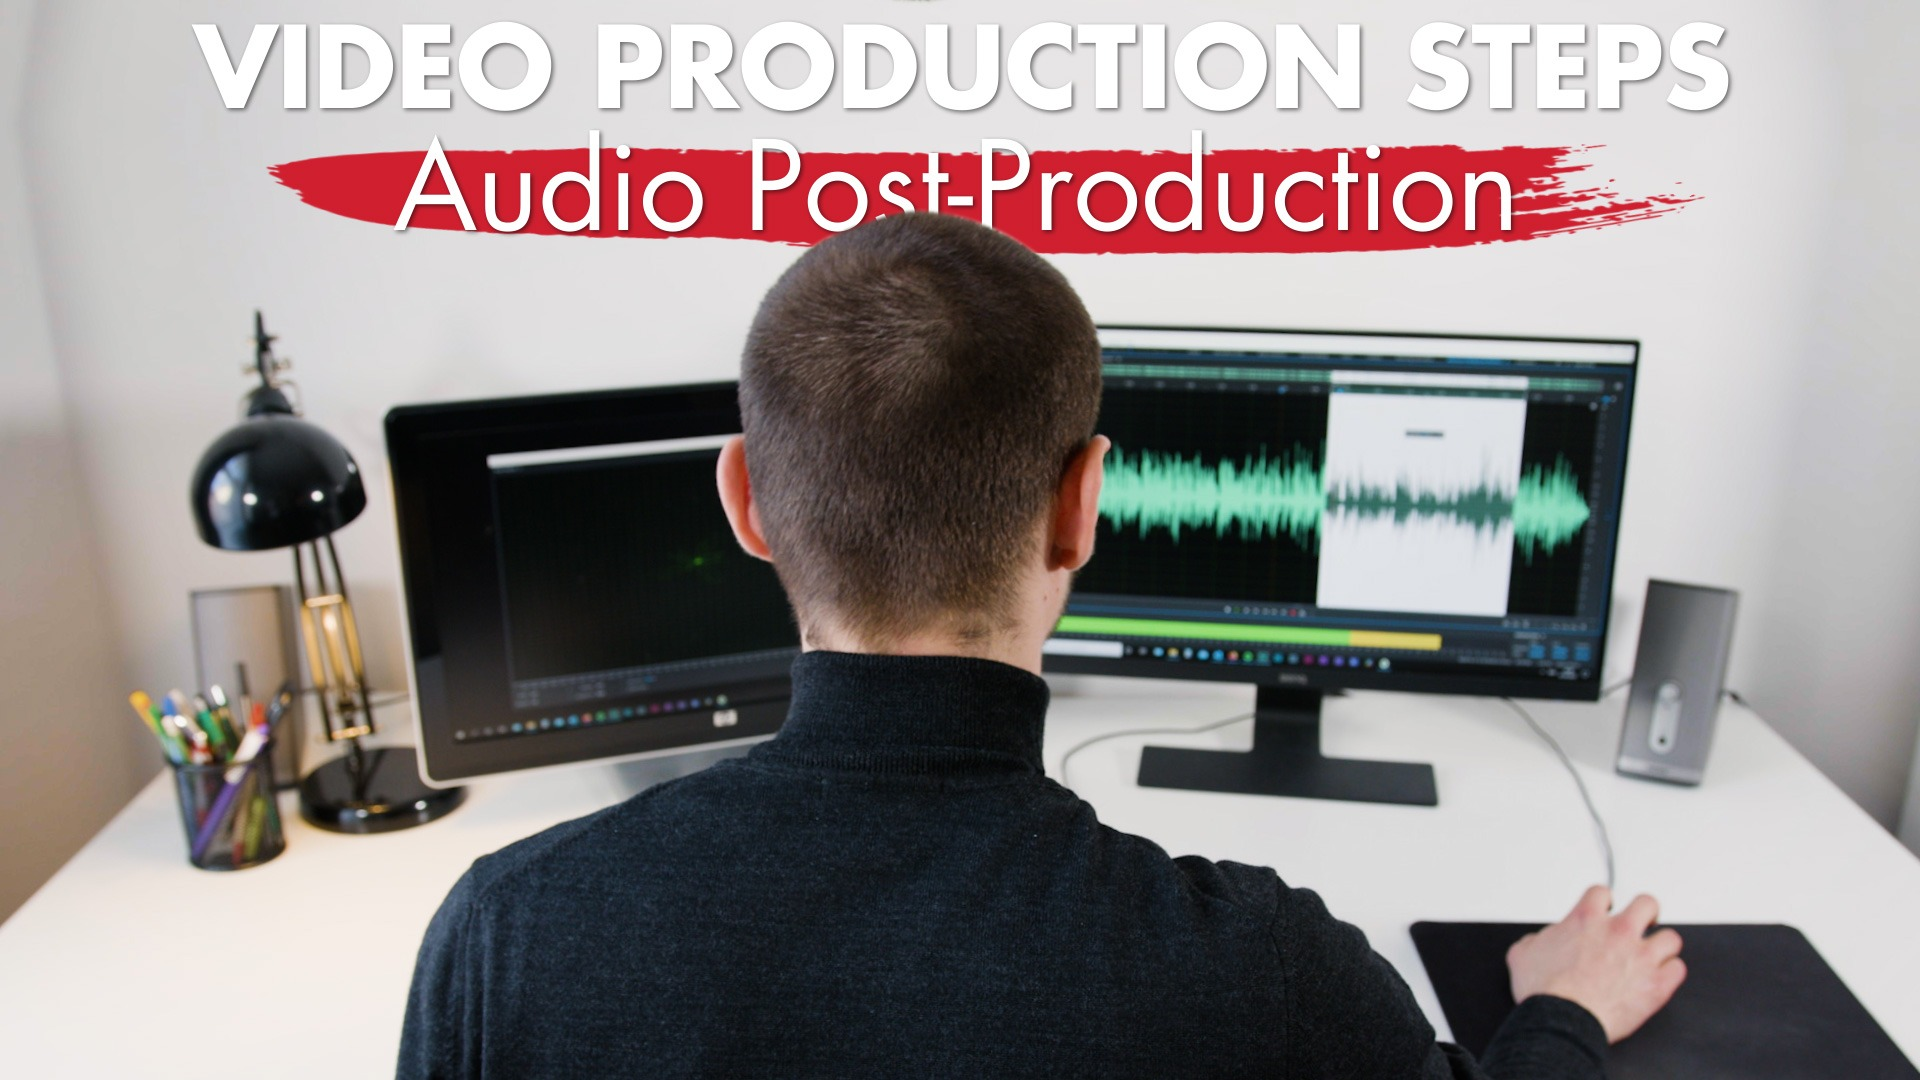 Audio engineer working in Post-Production